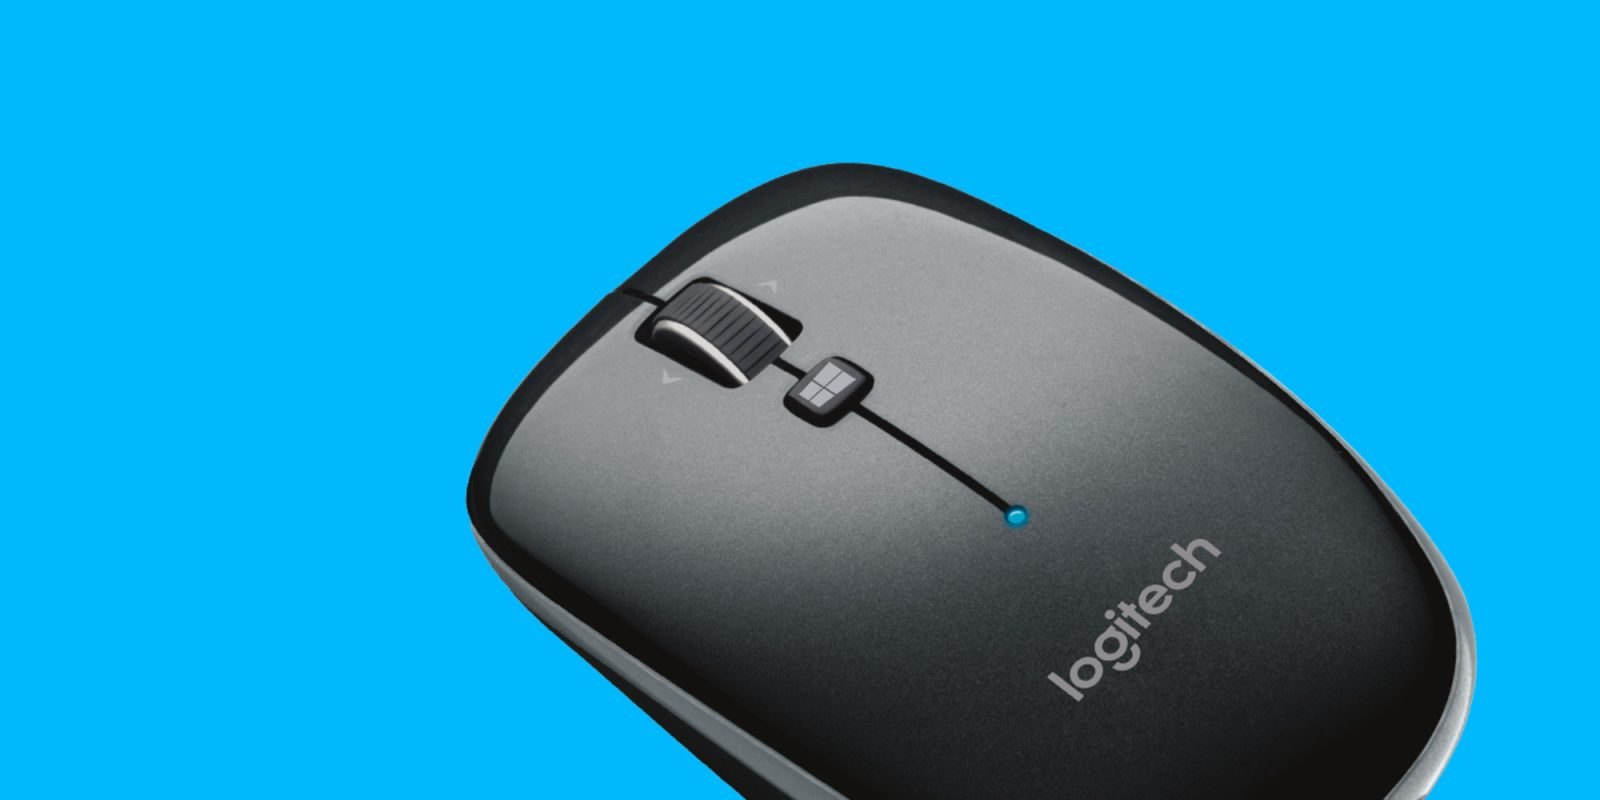 Add Logitech's Bluetooth Mouse to your bag for $23 Prime shipped